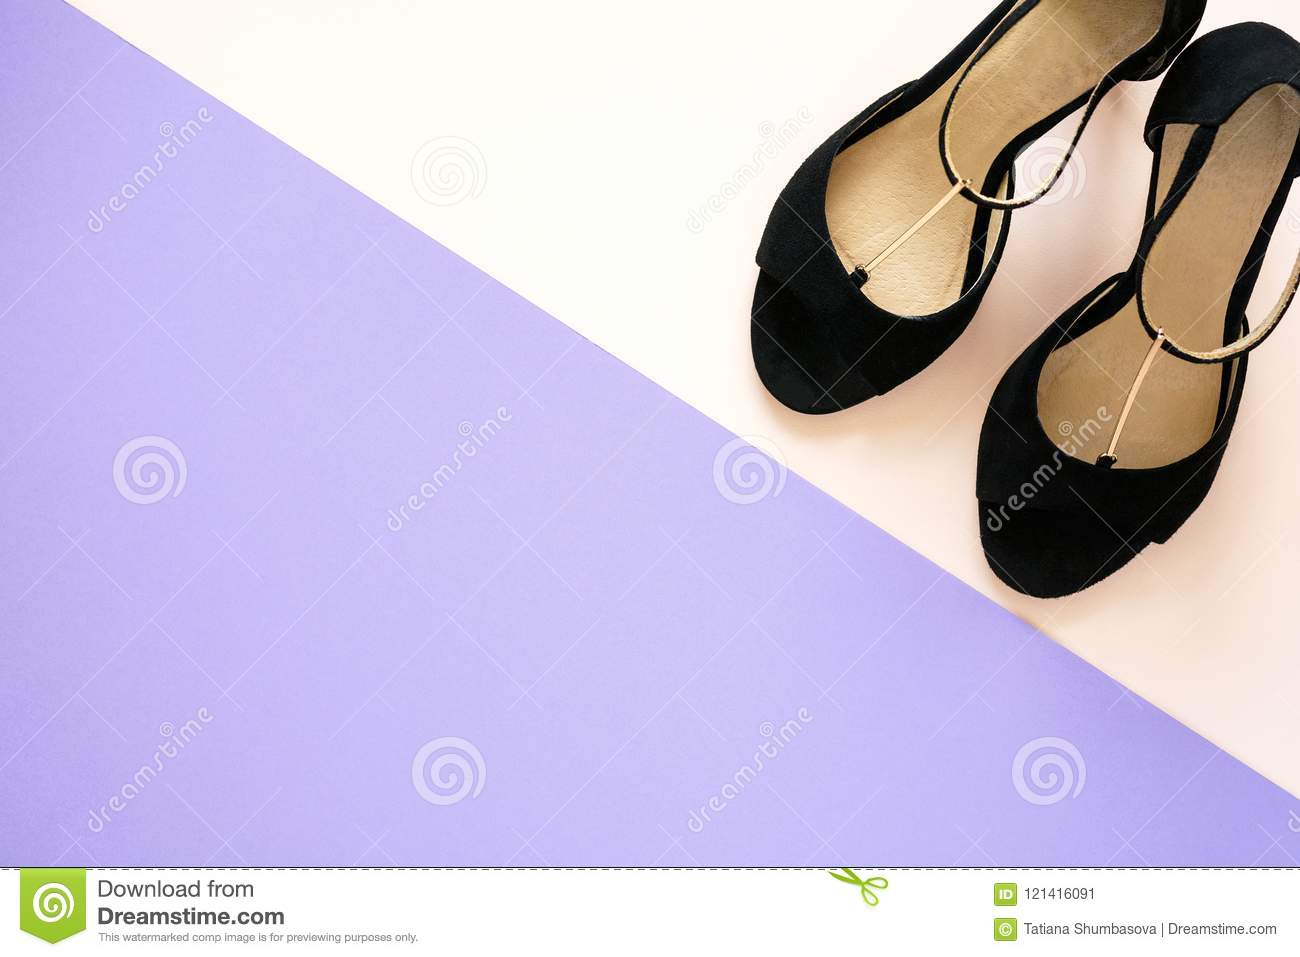 373b705bb Stylish classic black women`s leather sandals shoes with high heels on pink  purple multi-colored paper background. Copy space